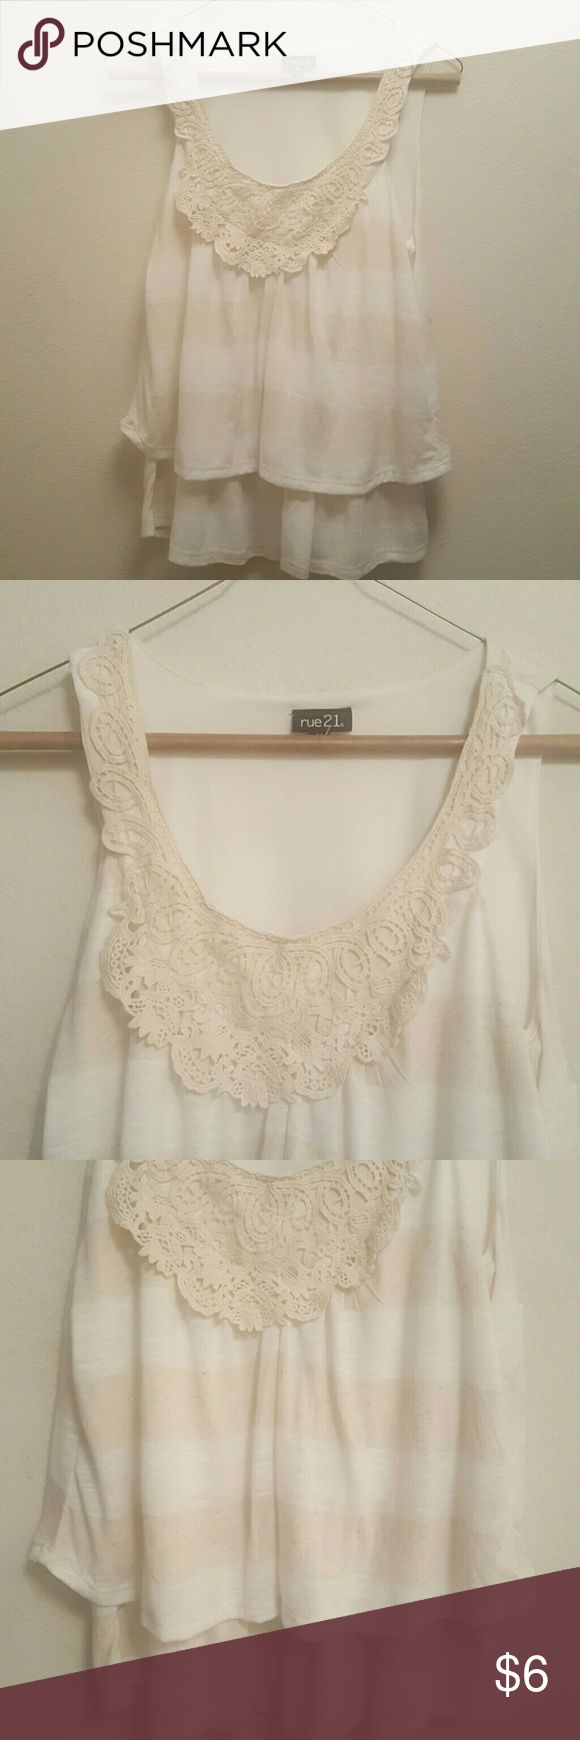 Rue 21 Cream & Beige Top/w lace around collar Like new worn once.  Very comfortable fit. Rue 21 Tops Tank Tops